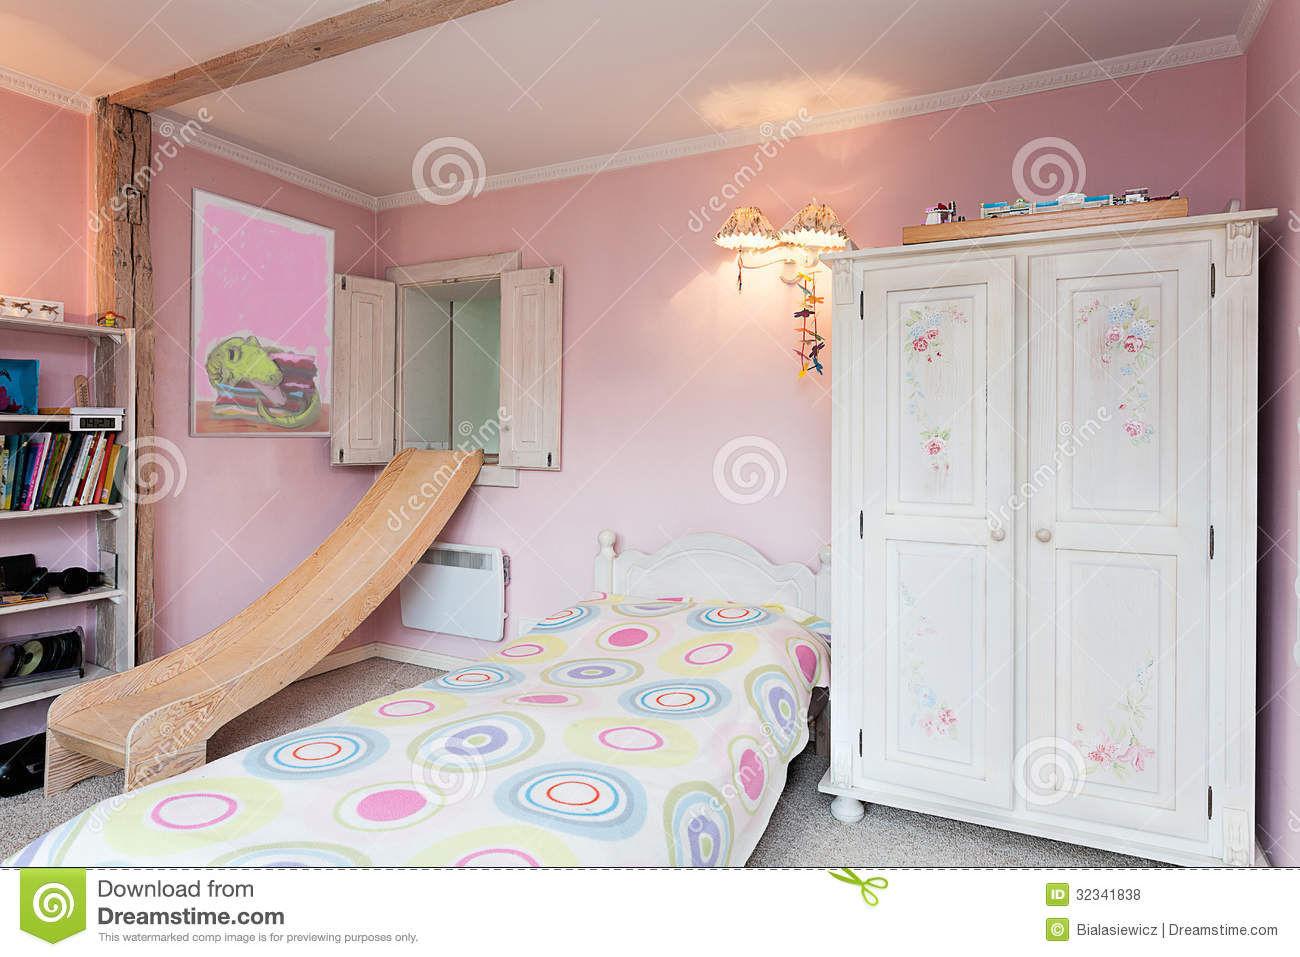 Mansion Bedrooms For Girls vintage mansion - girl's room royalty free stock photos - image